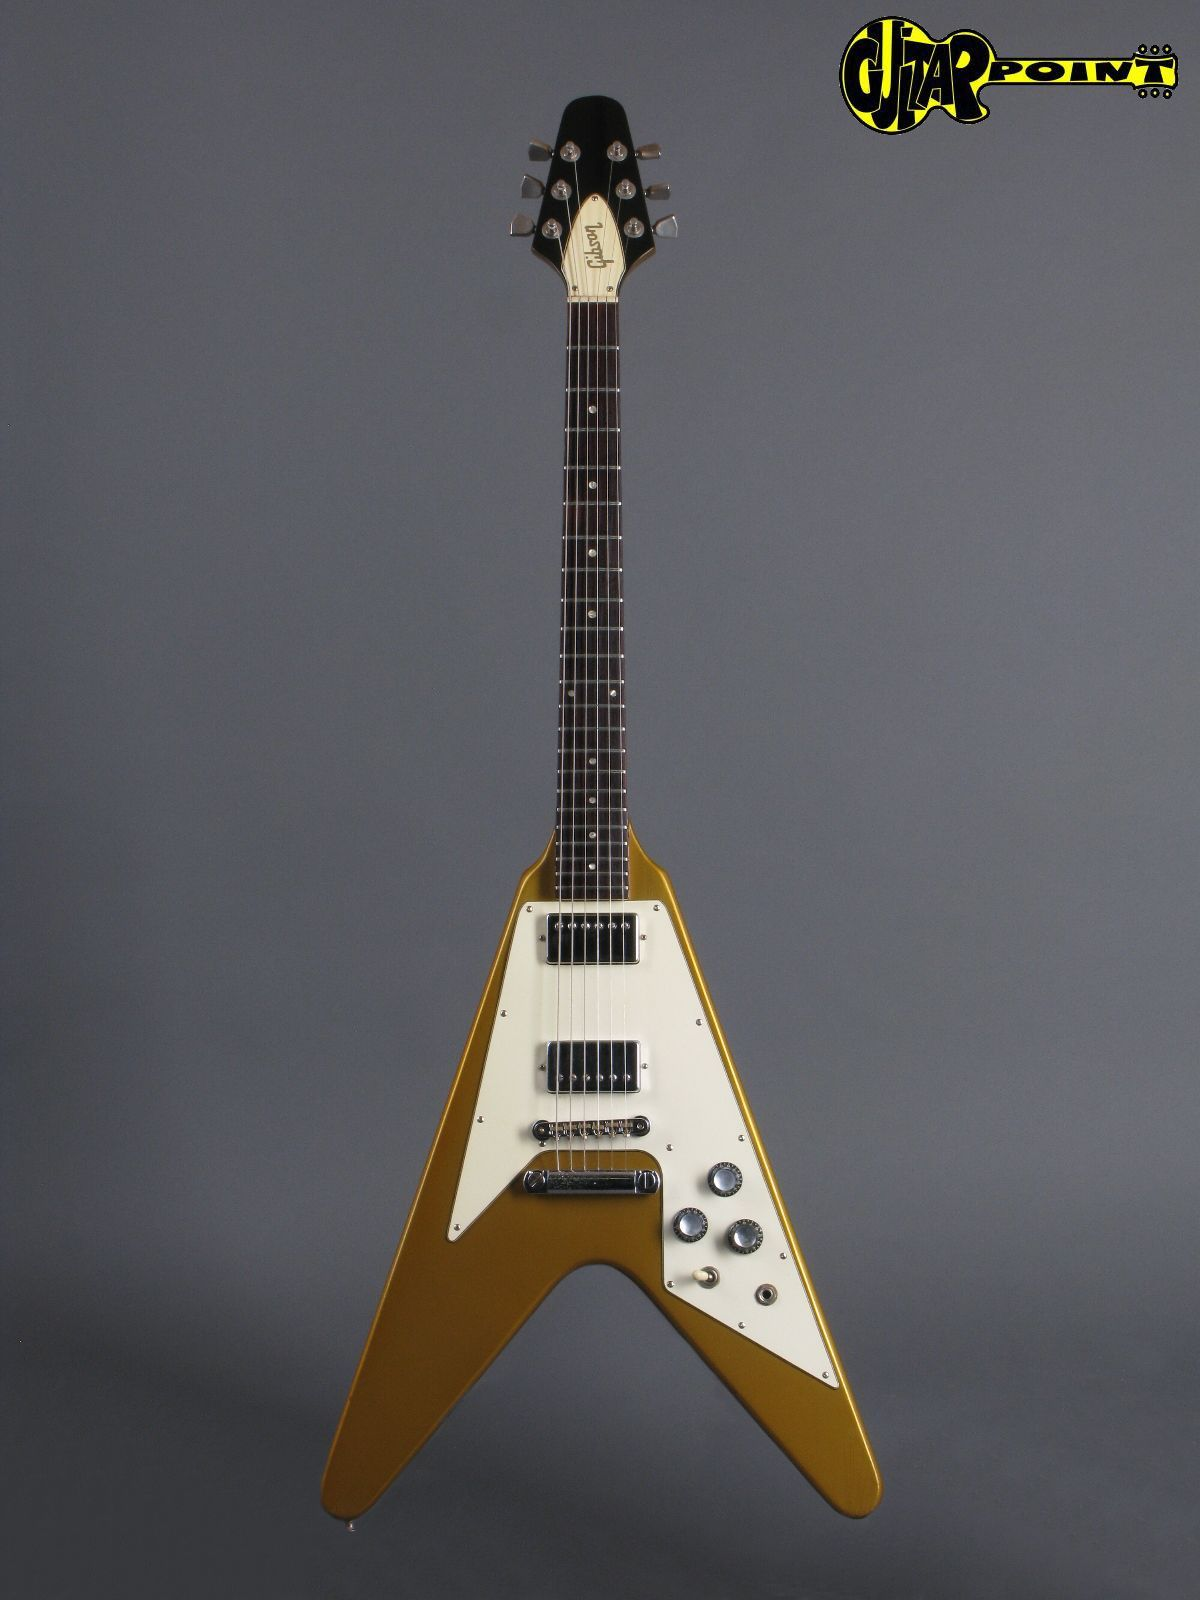 gibson flying v 1980 gold guitar for sale guitarpoint. Black Bedroom Furniture Sets. Home Design Ideas